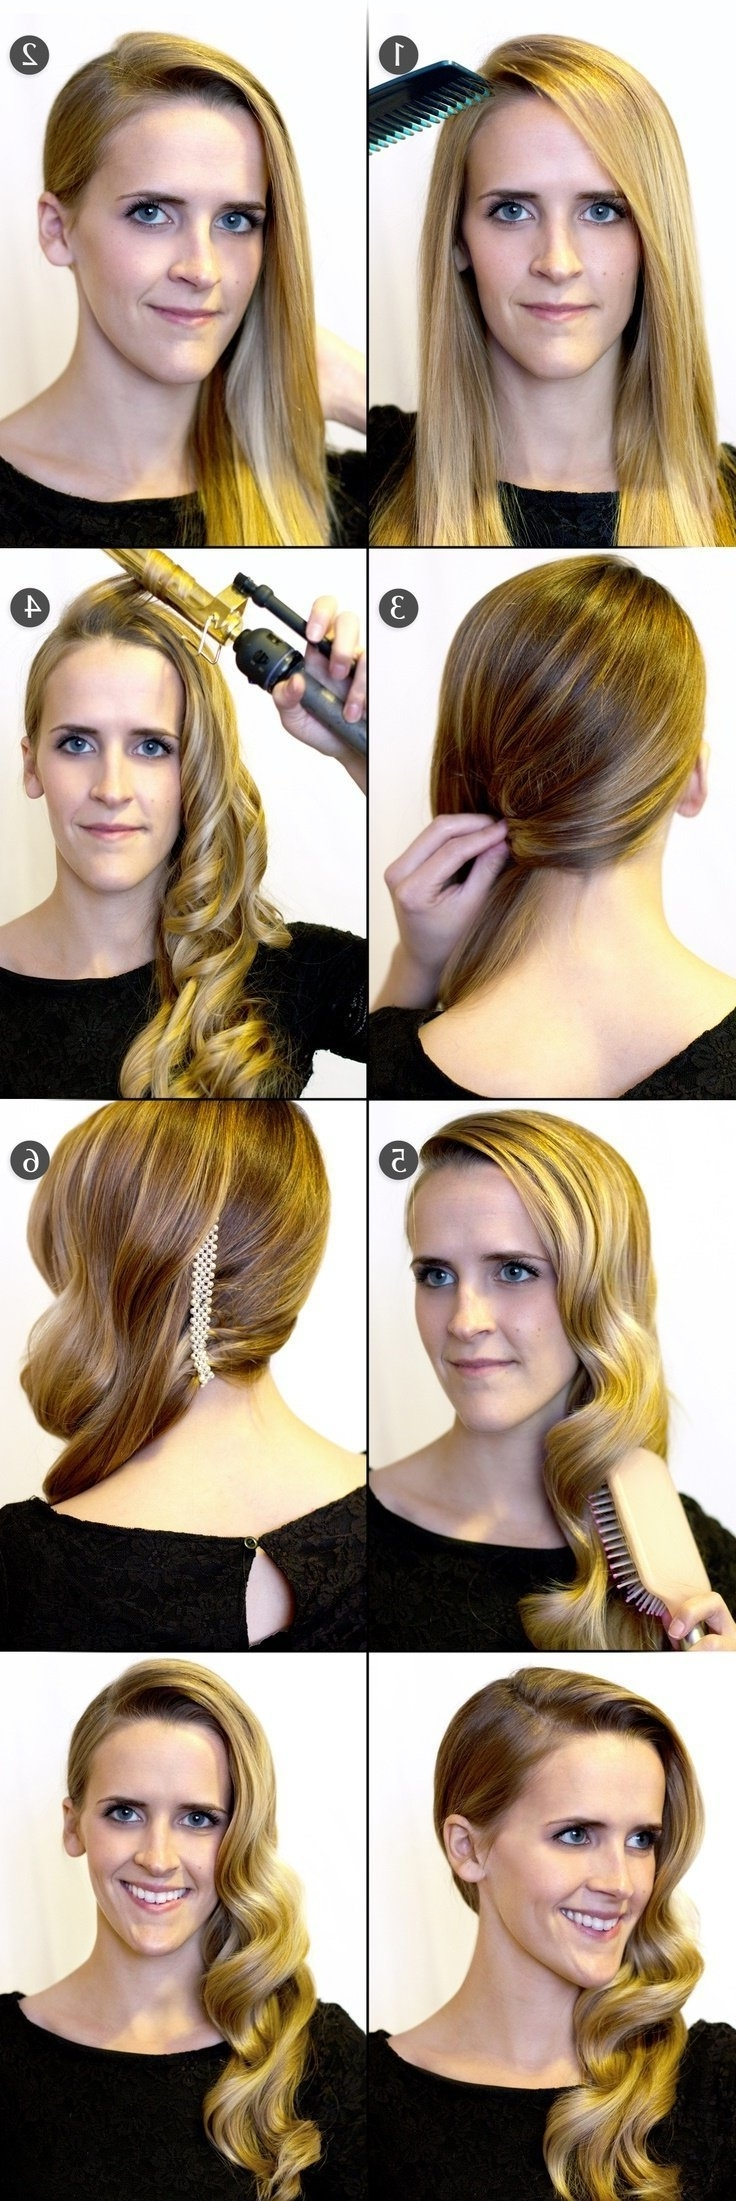 20 Photo Of 2 Minute Side Pony Hairstyles